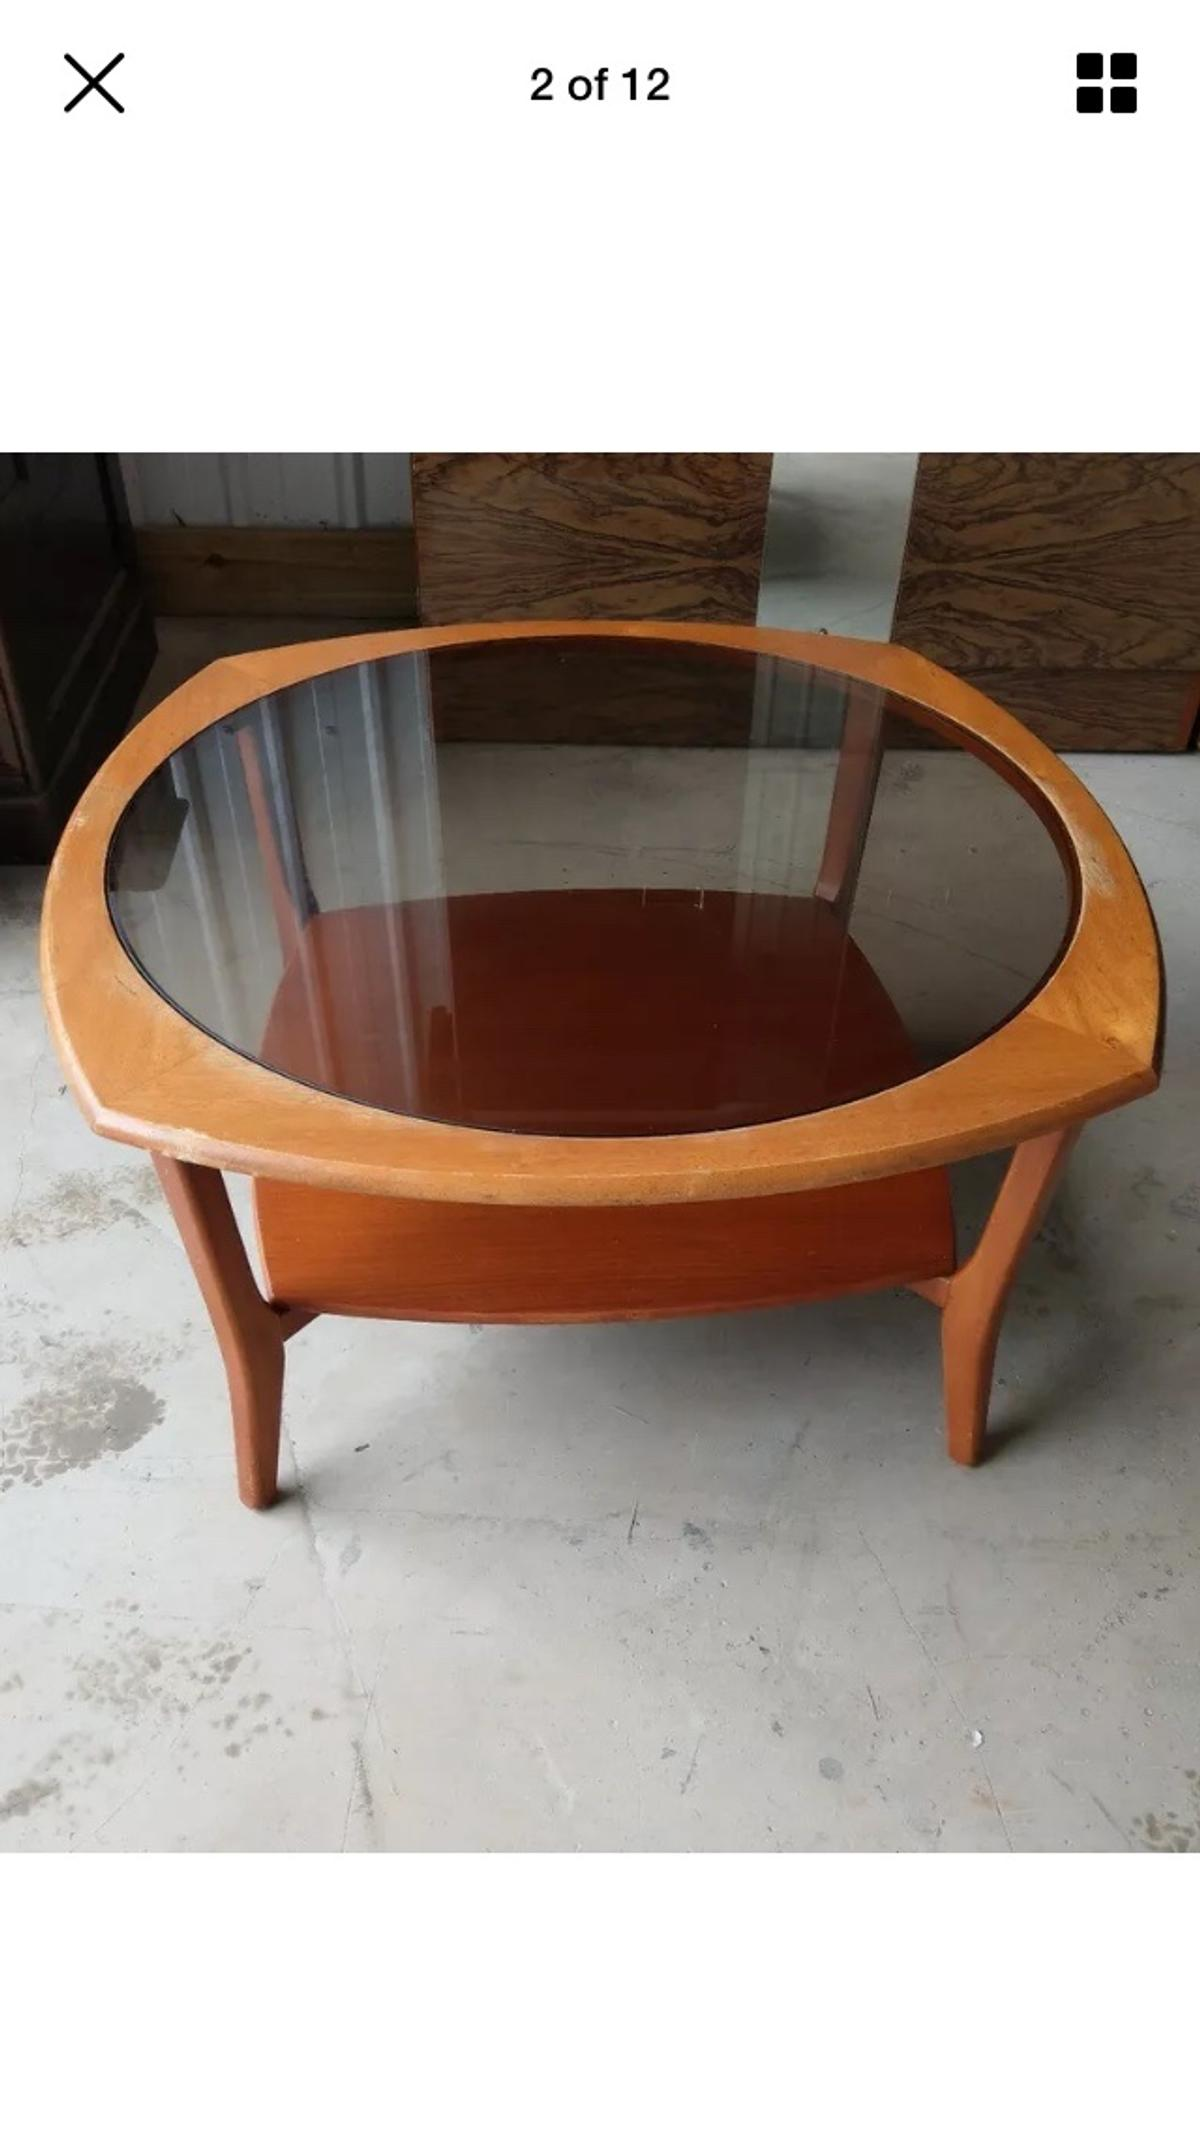 Stunning G Plan Round Coffee Table